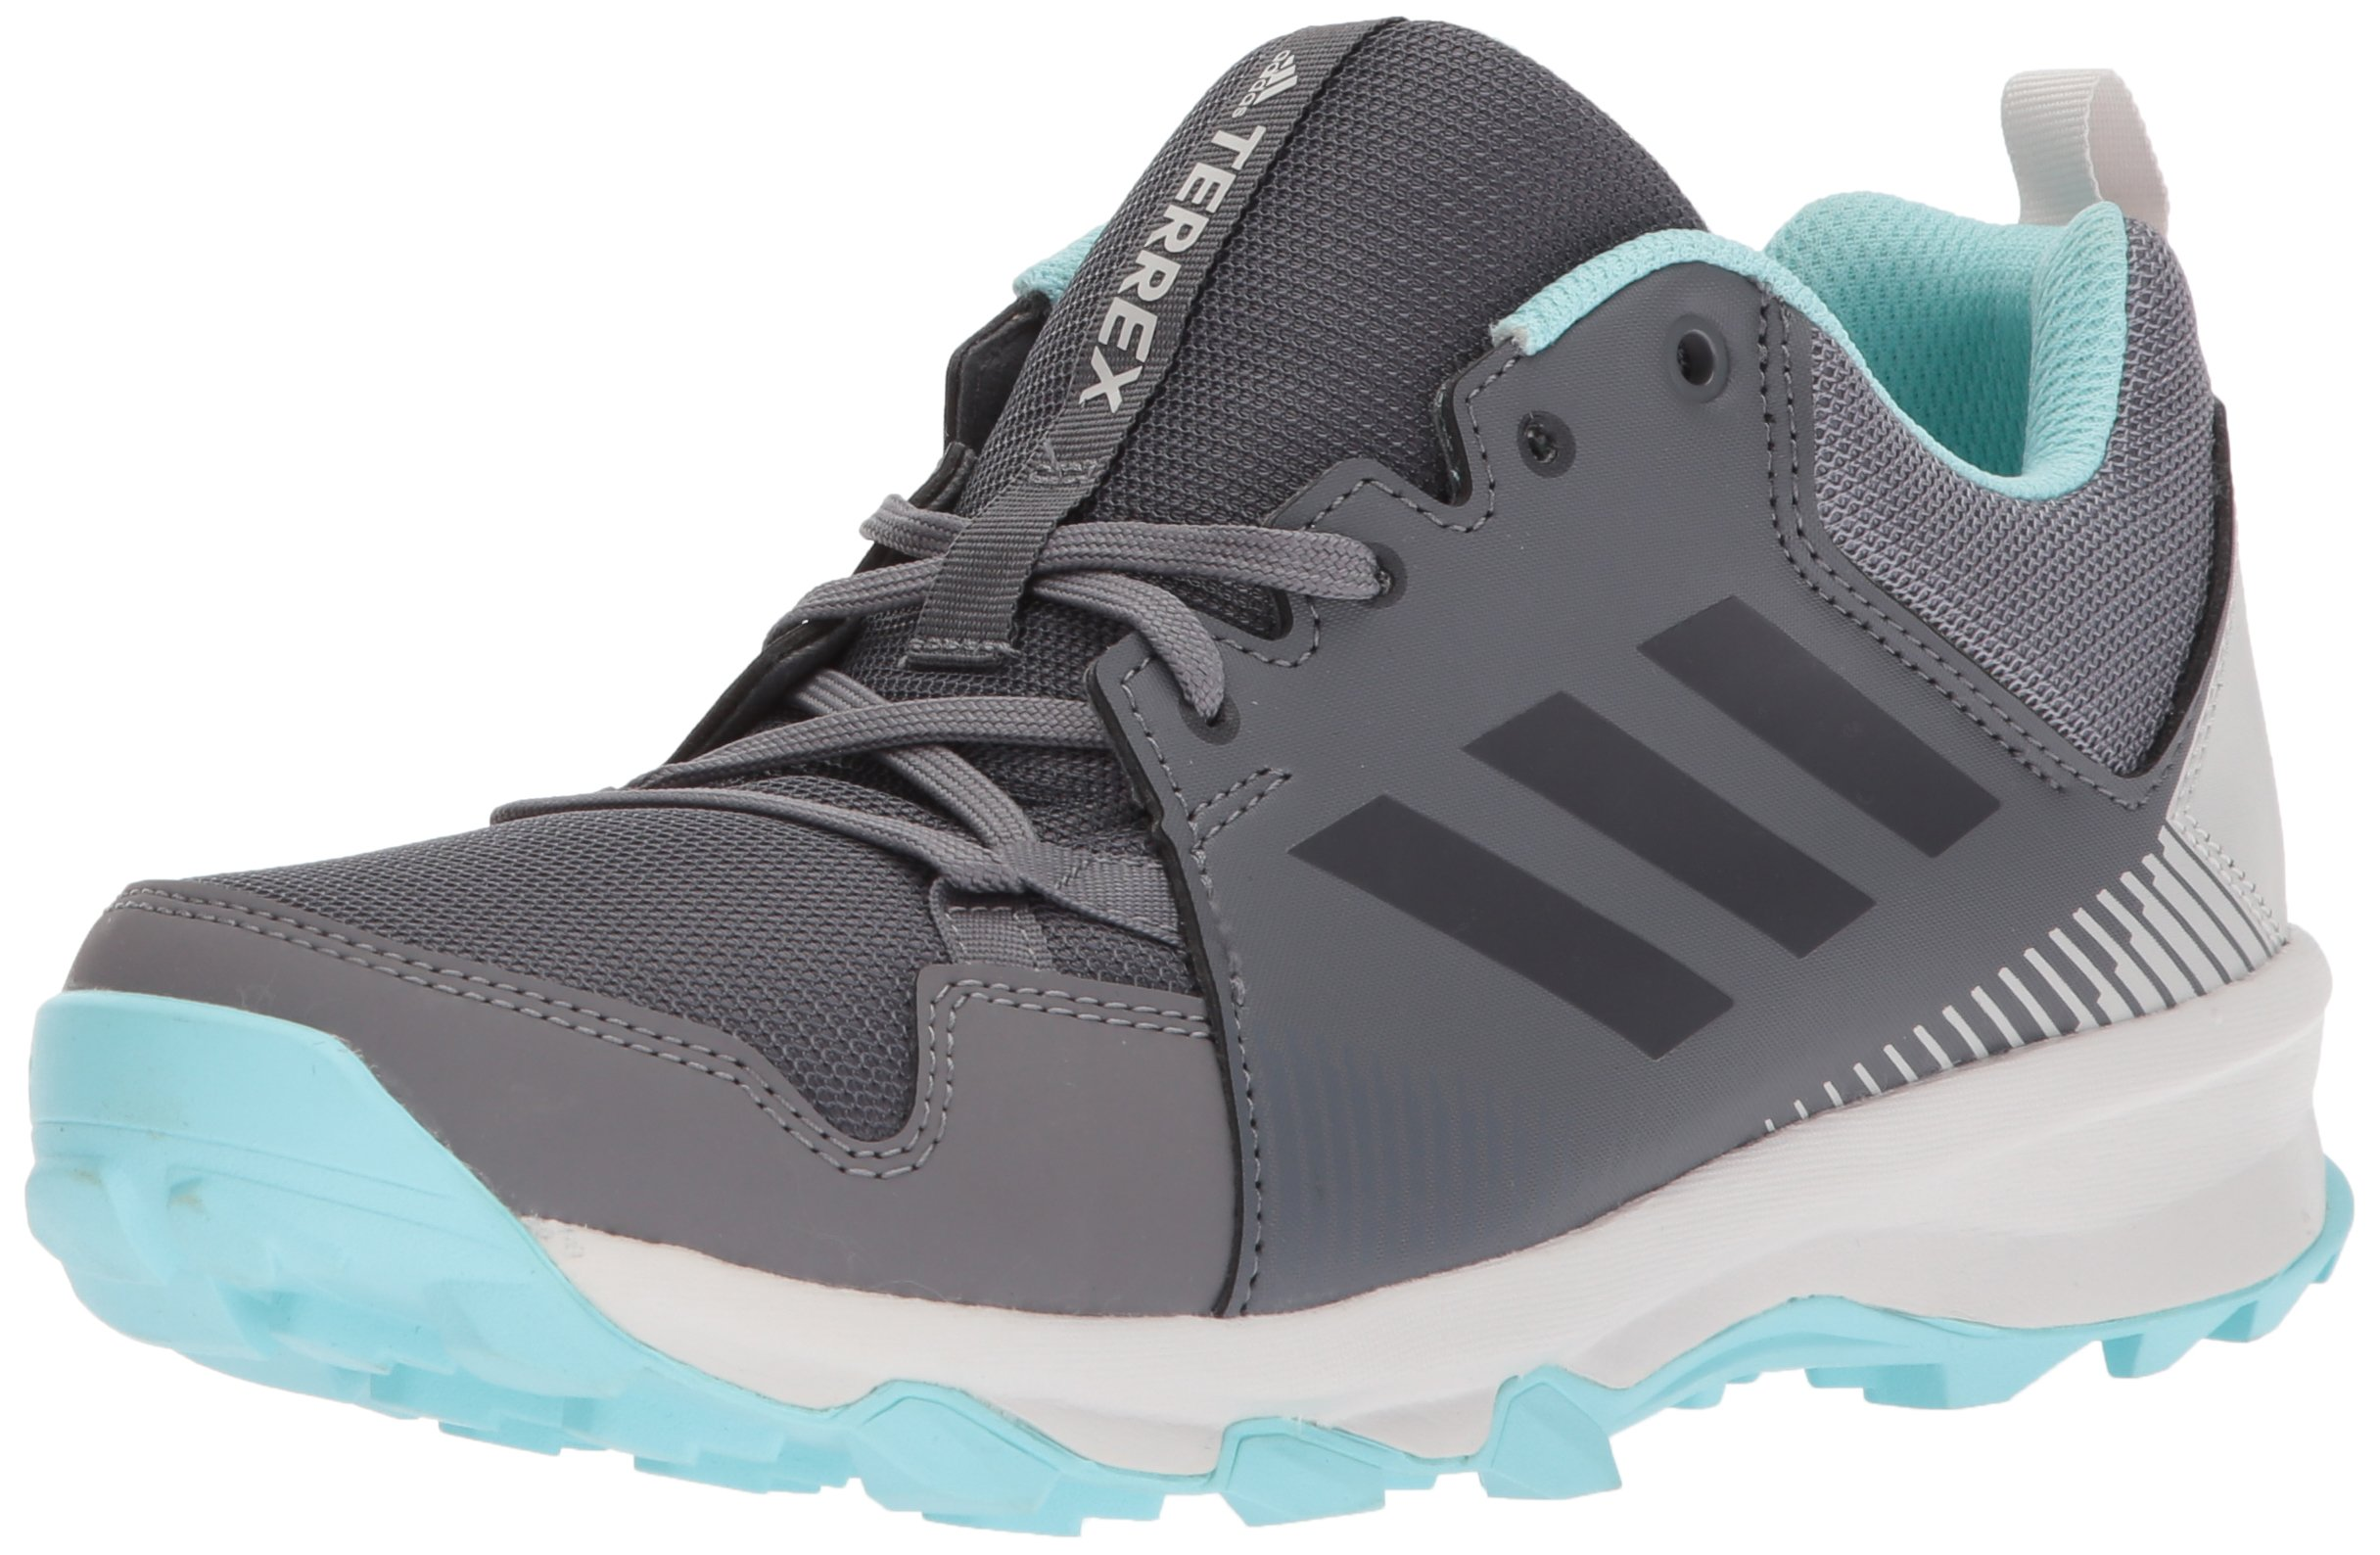 adidas outdoor Women's Terrex Tracerocker W Trail Running Shoe Grey Five/Chalk White/Easy Coral 6 M US